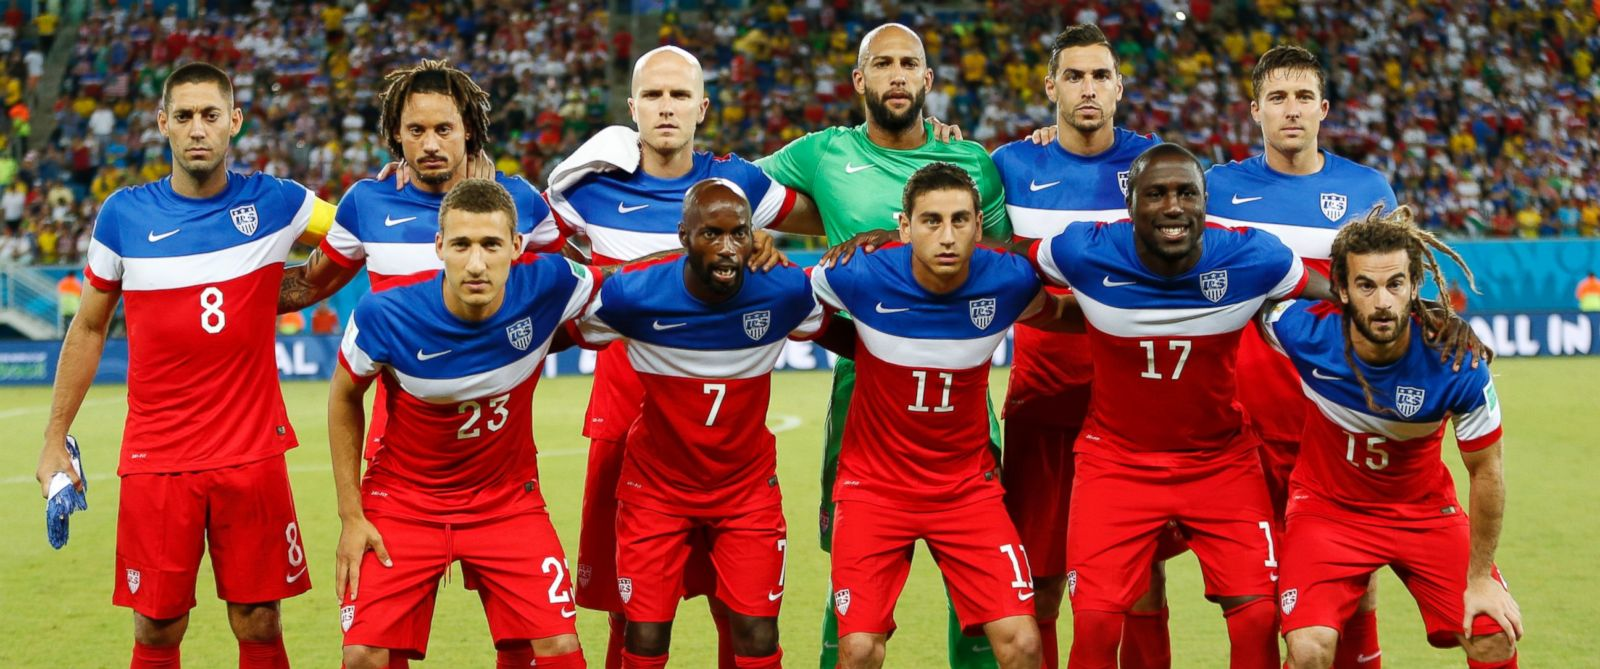 2014 FIFA World Cup: US Players Get Pumped Up For Belgium